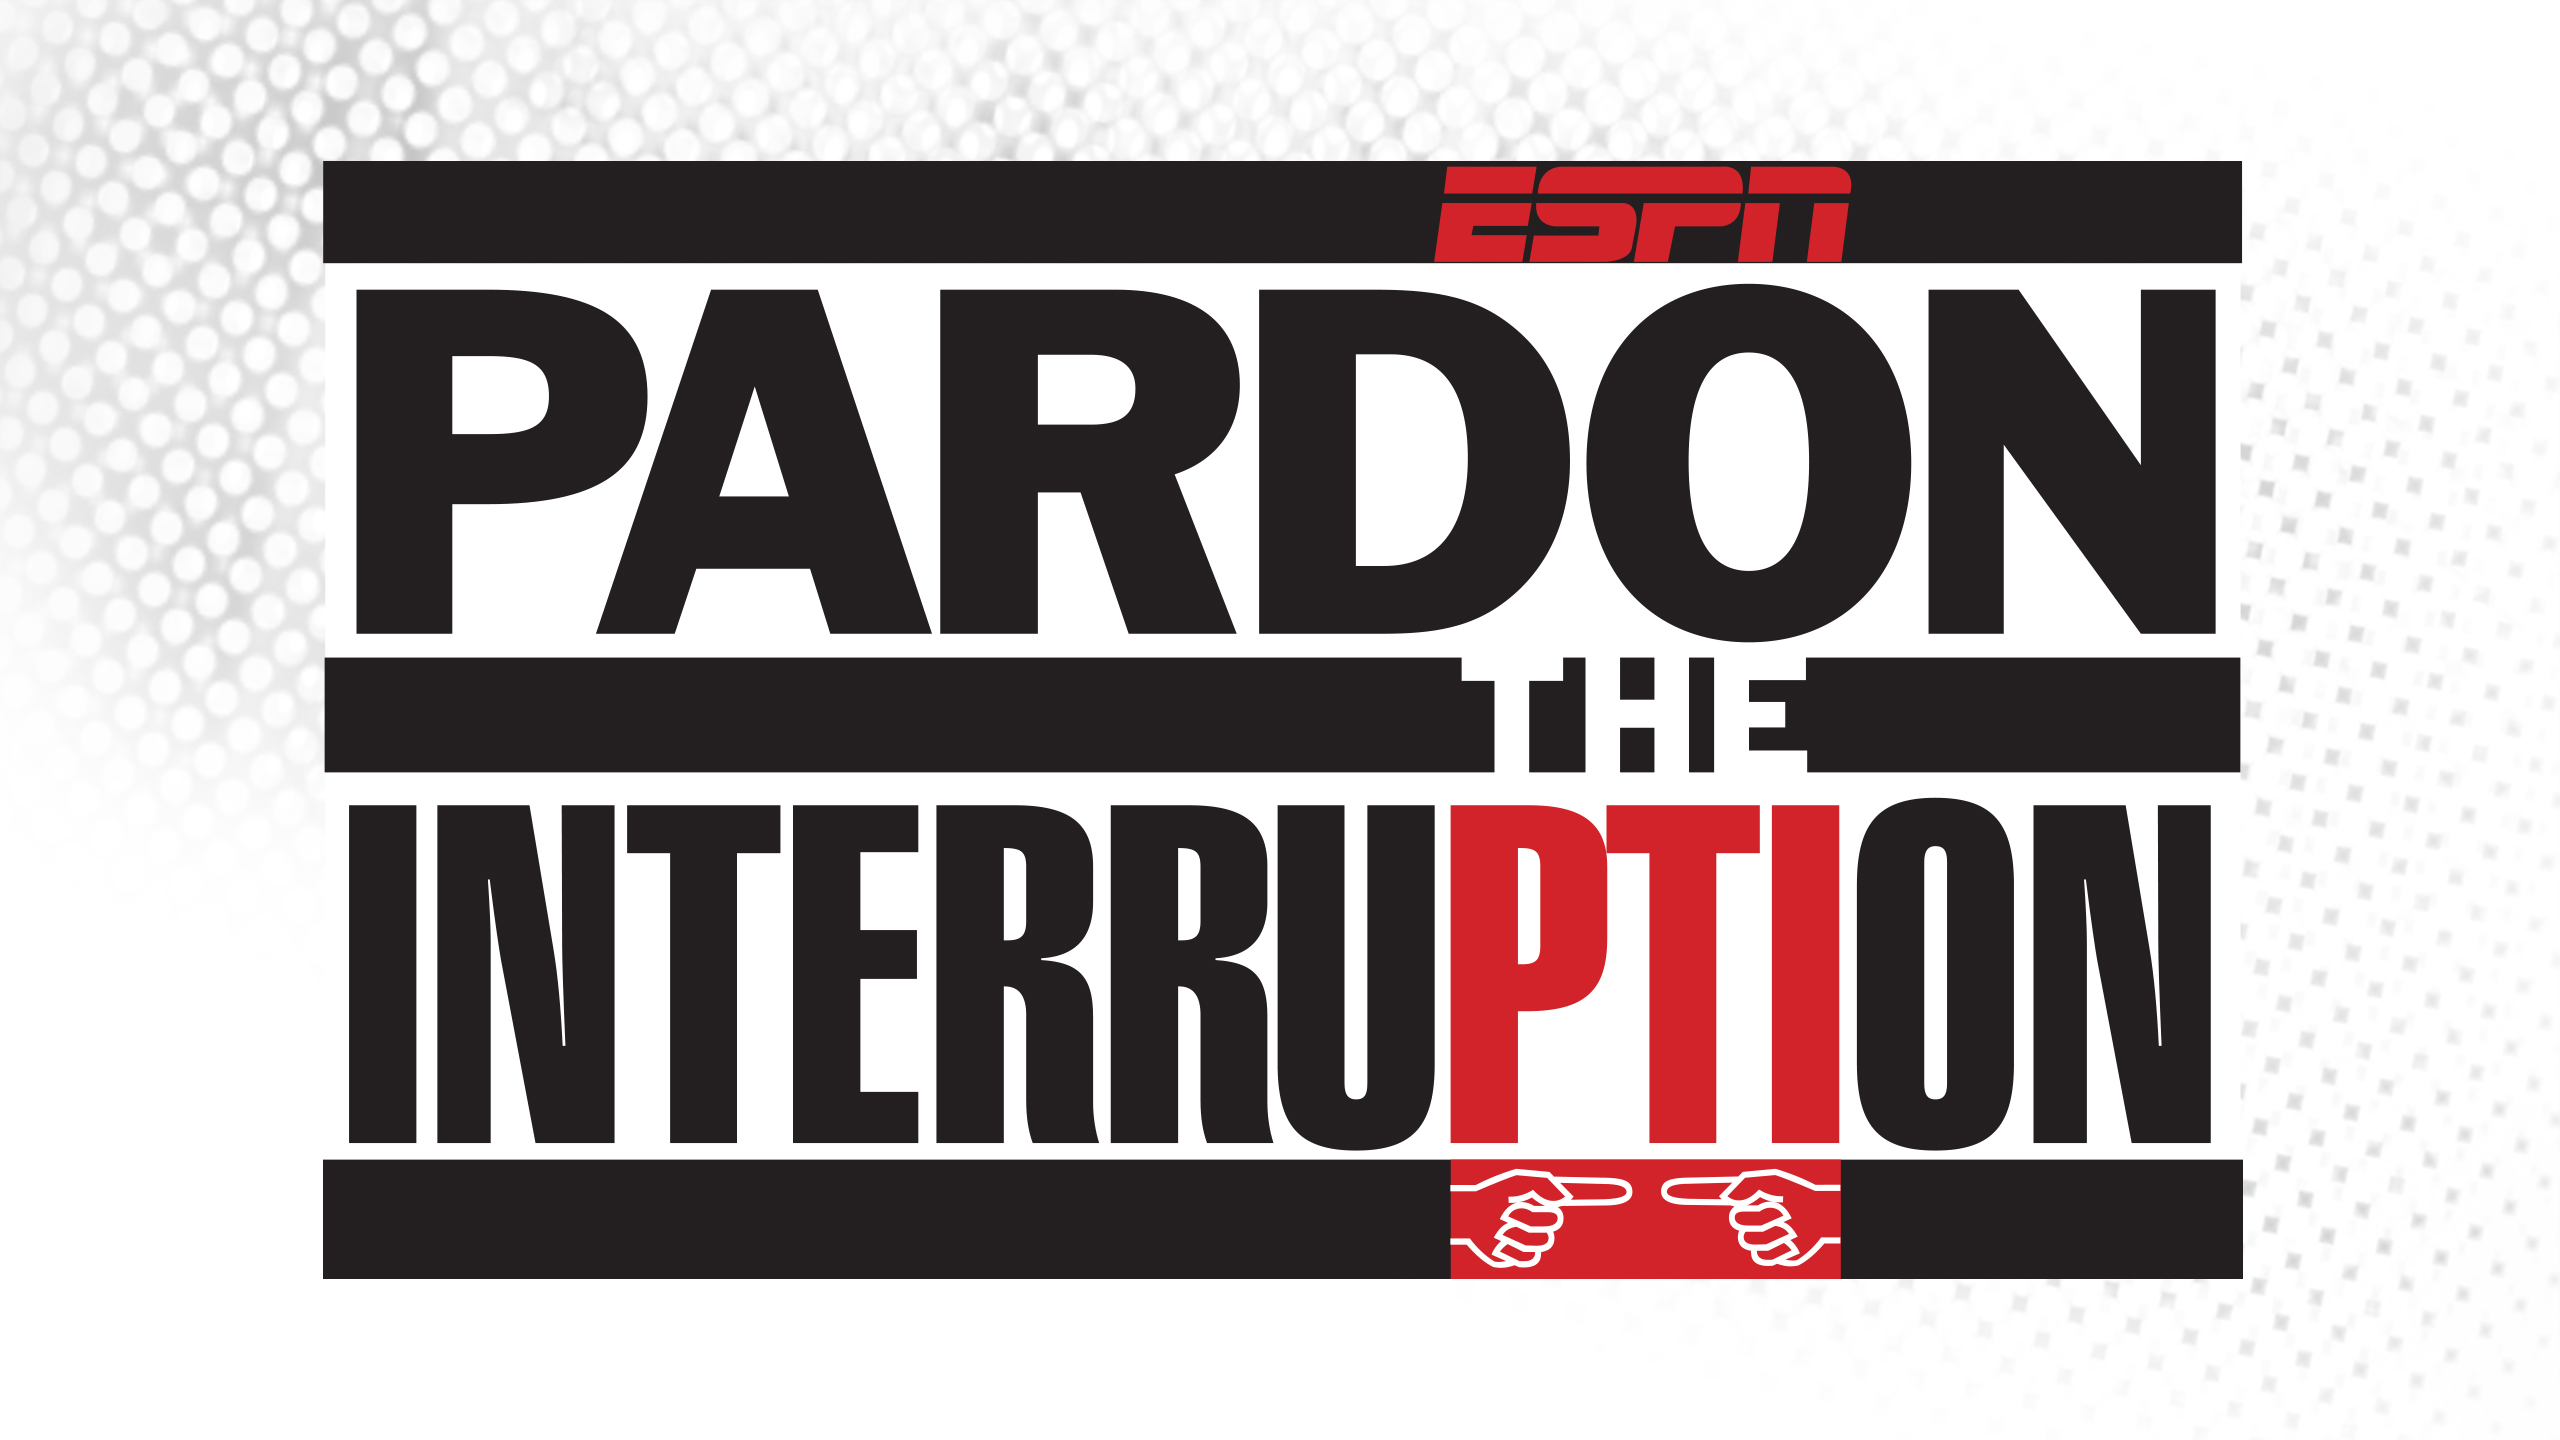 Mon, 4/15 - Pardon The Interruption